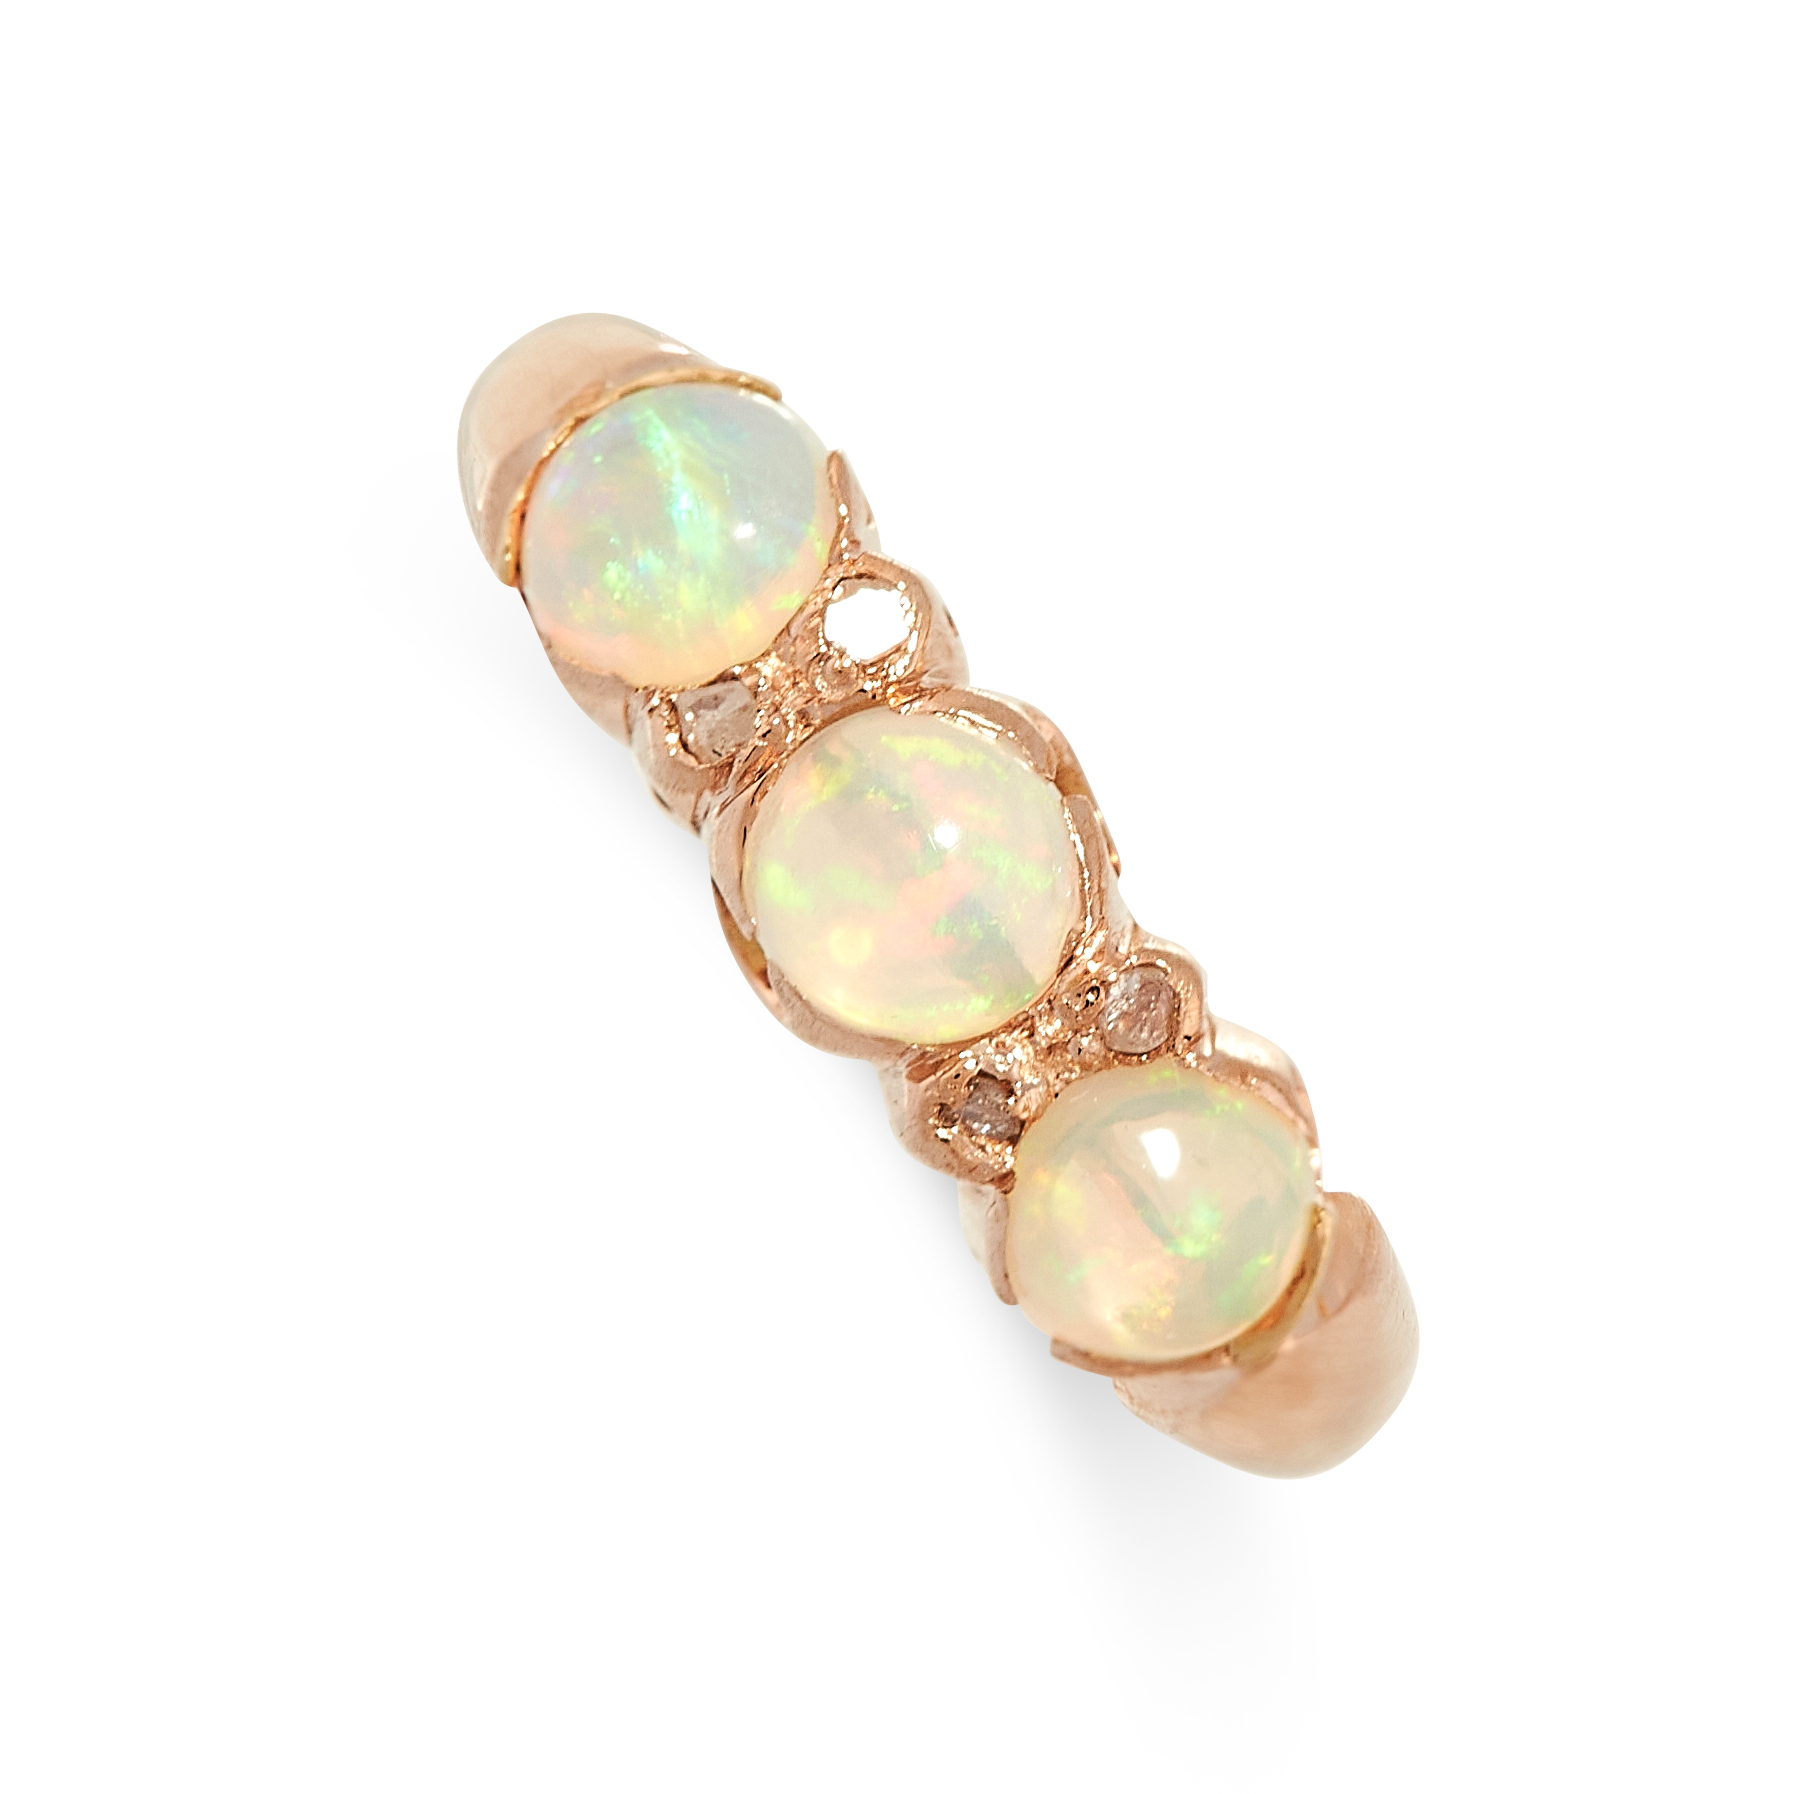 AN OPAL AND DIAMOND DRESS RING, CIRCA 1930 in yellow gold, set with a trio of graduated circular